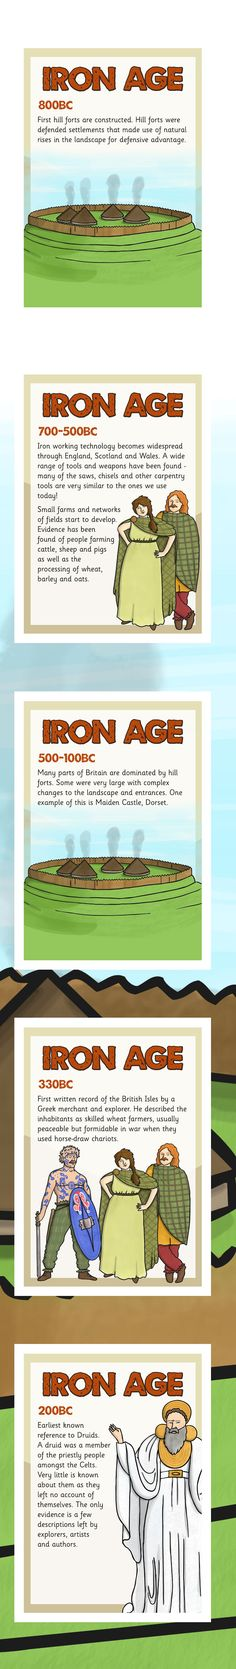 The Iron Age-  The Iron Age Timeline Posters